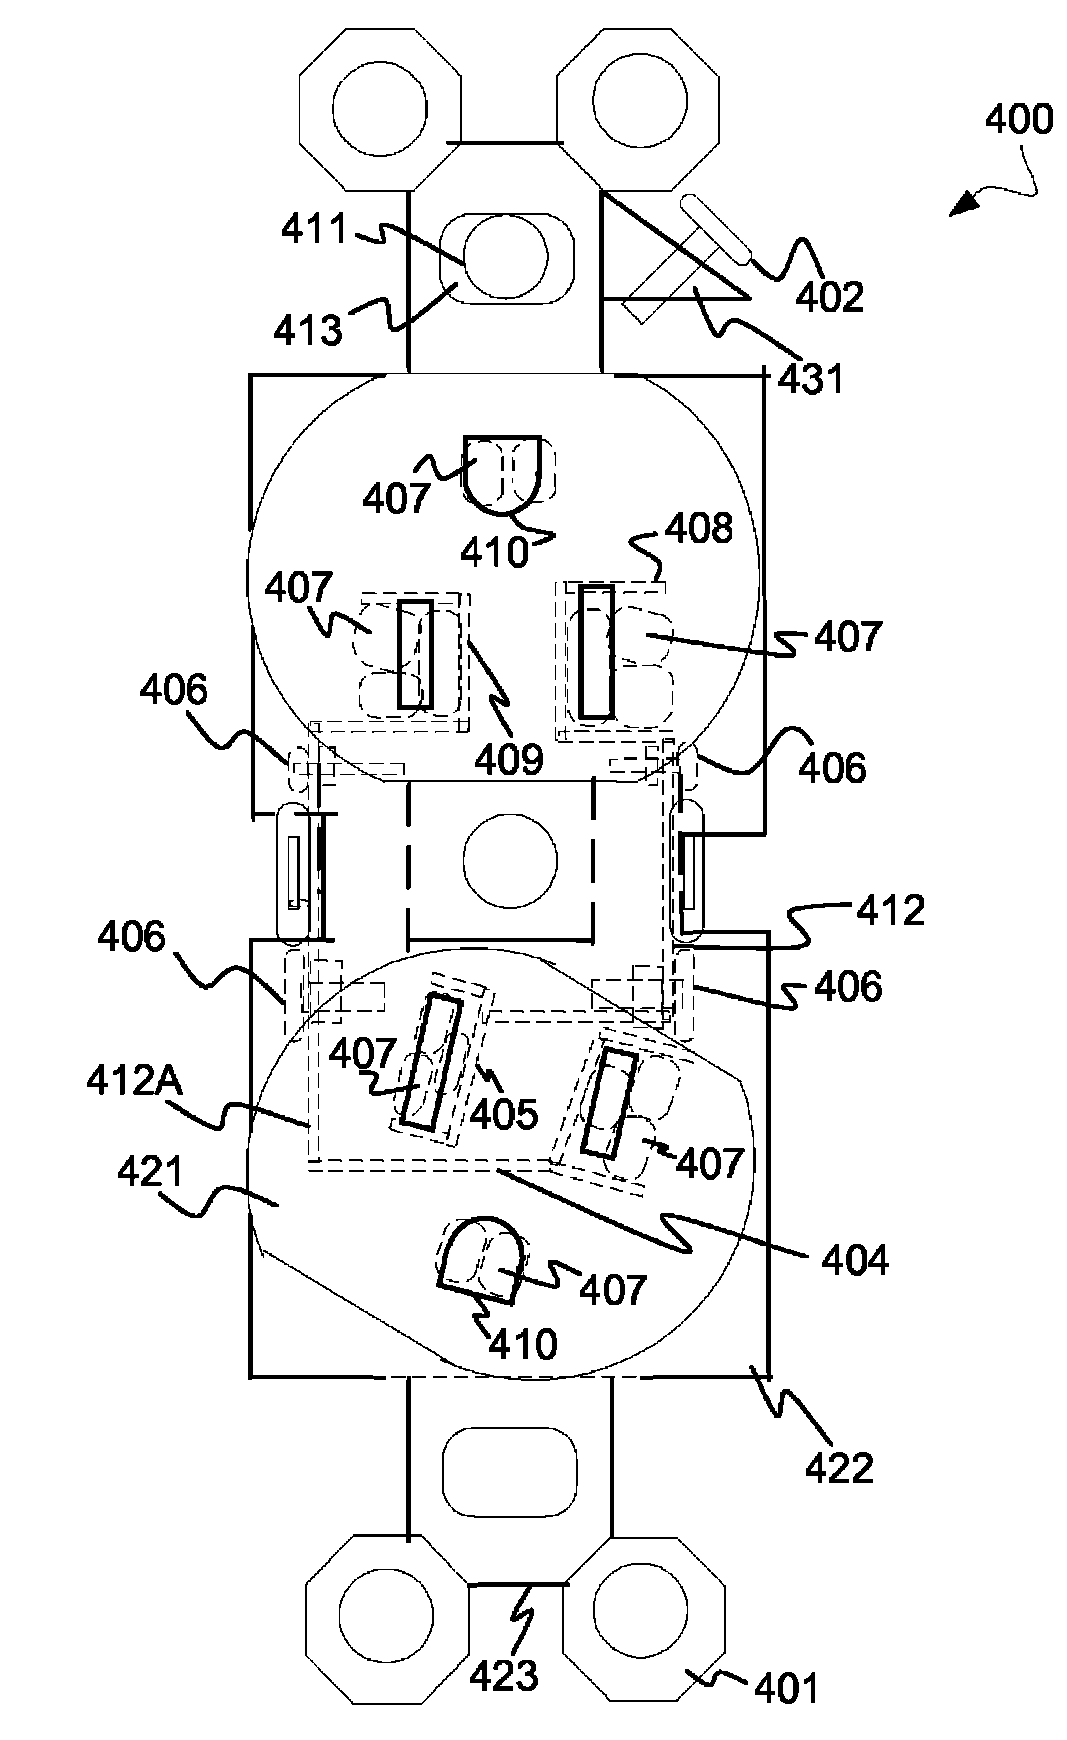 Patent Us8348682 Method For Electrical Outlet Having Grounds Out Nema 6 20r Receptacle Diagram Free Download Wiring Schematic Drawing